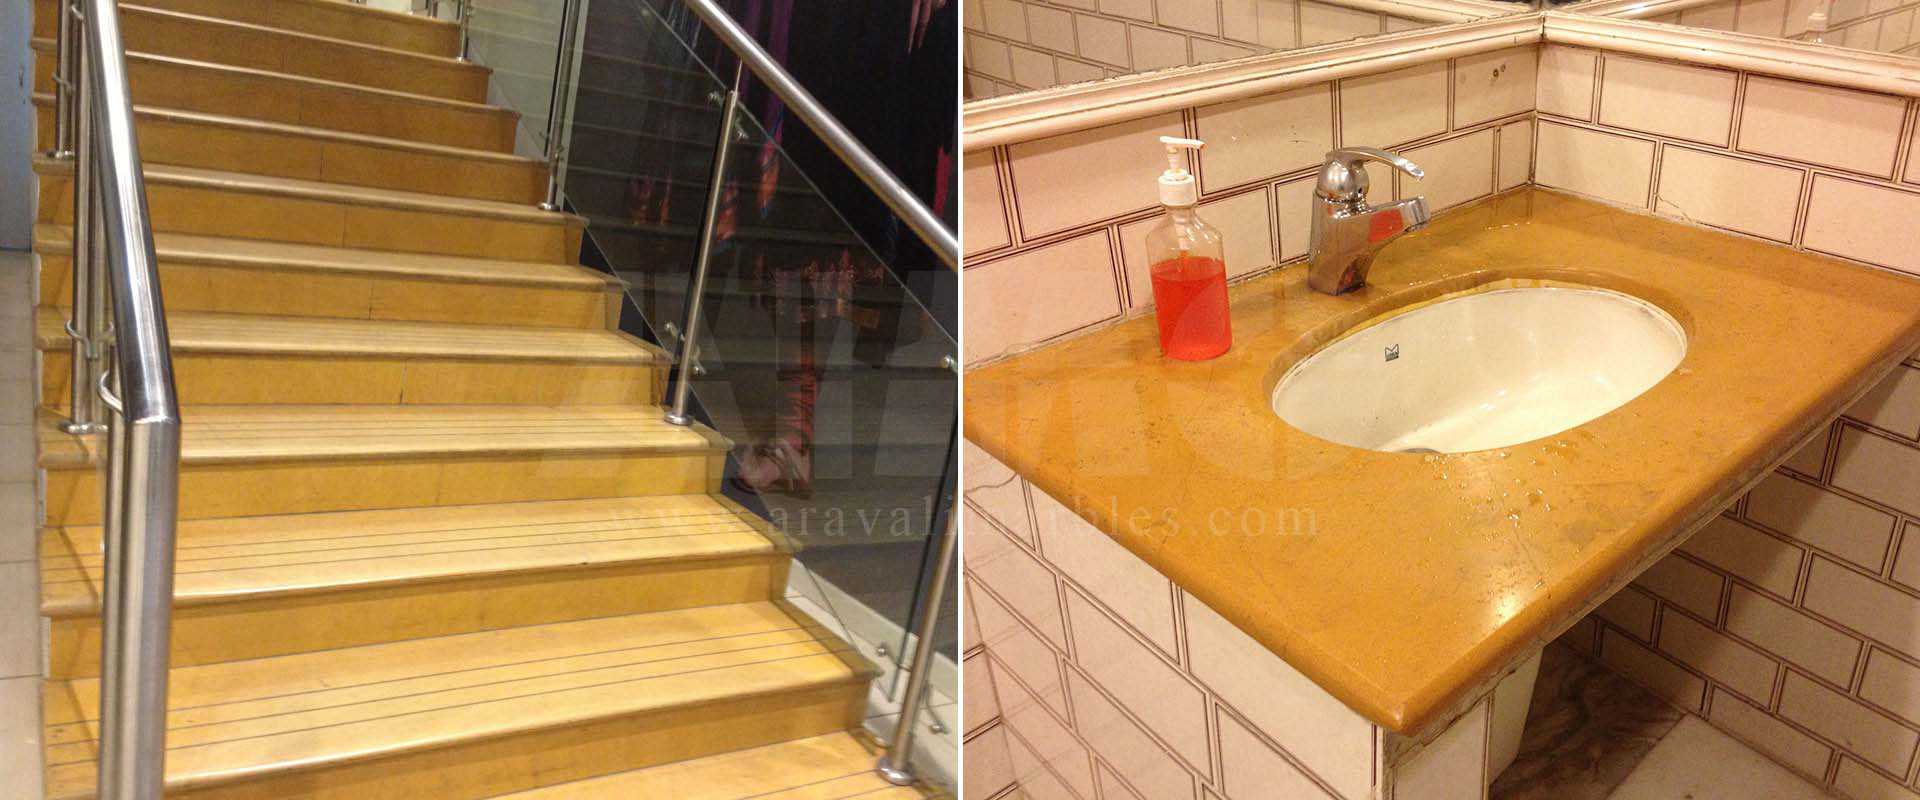 Jaisalmer Yellow Marble Manufacturer Suppliers Exporters In India